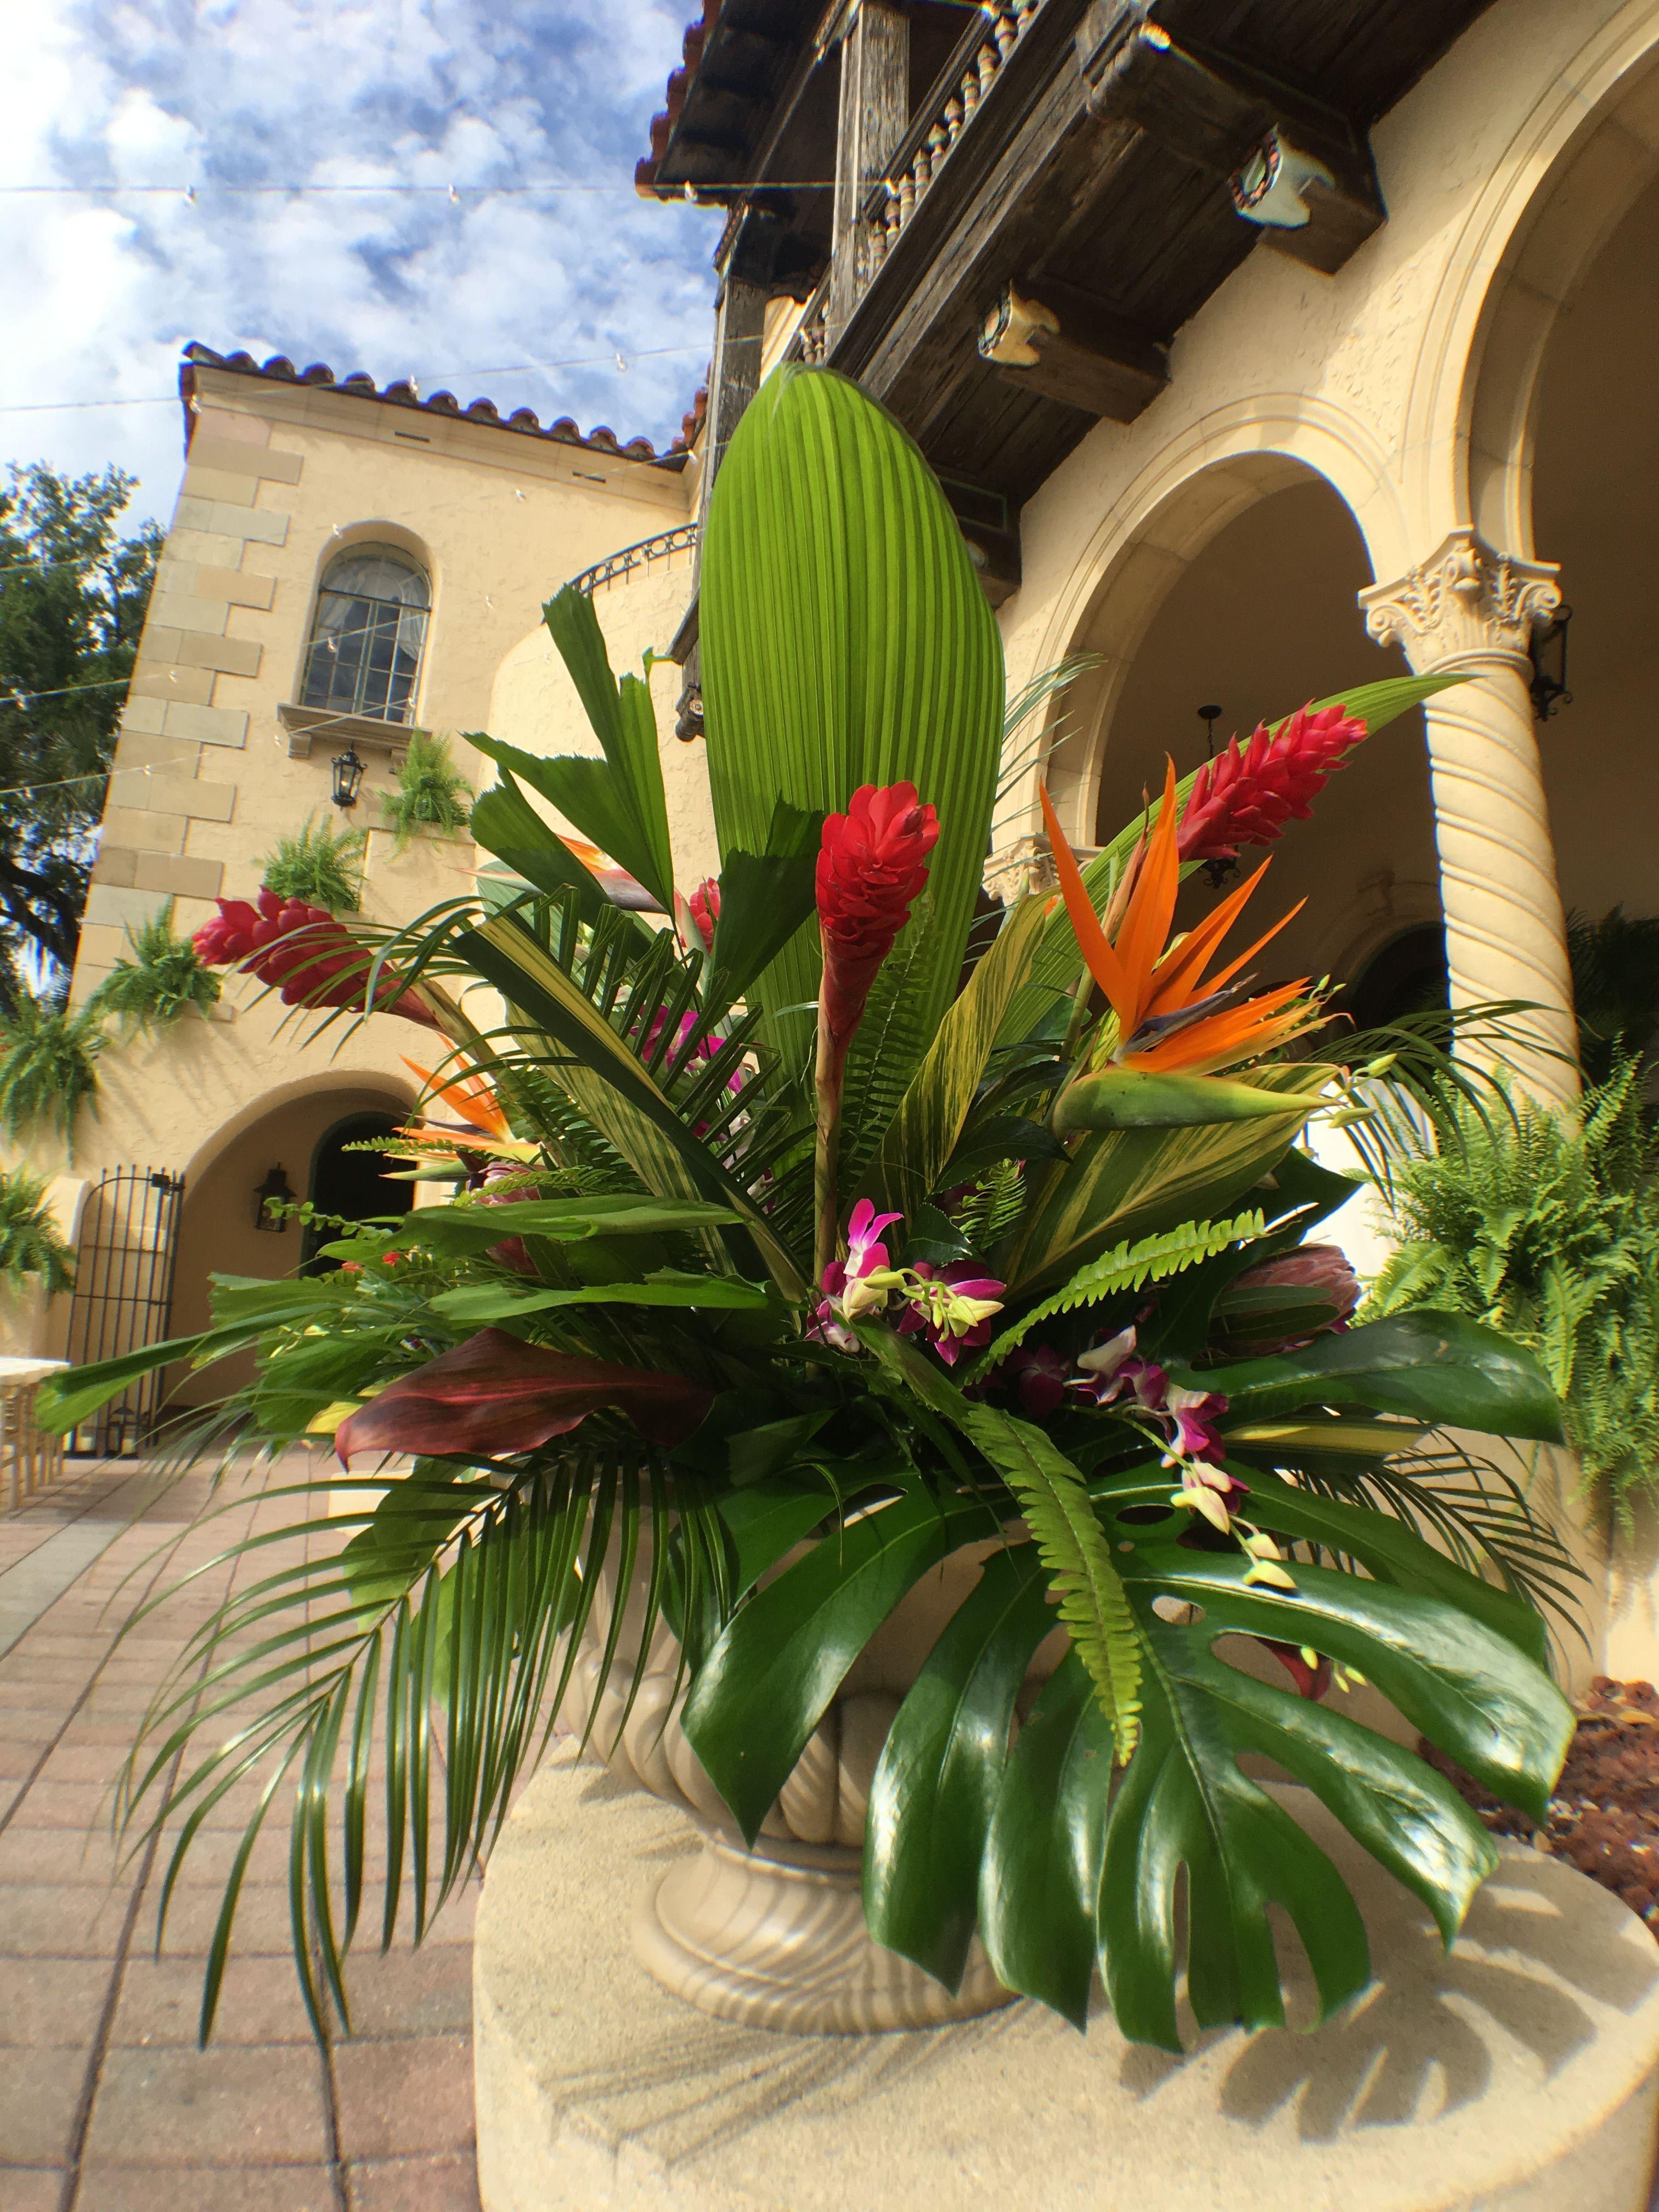 Adding a tropical style for the ceremony Destination